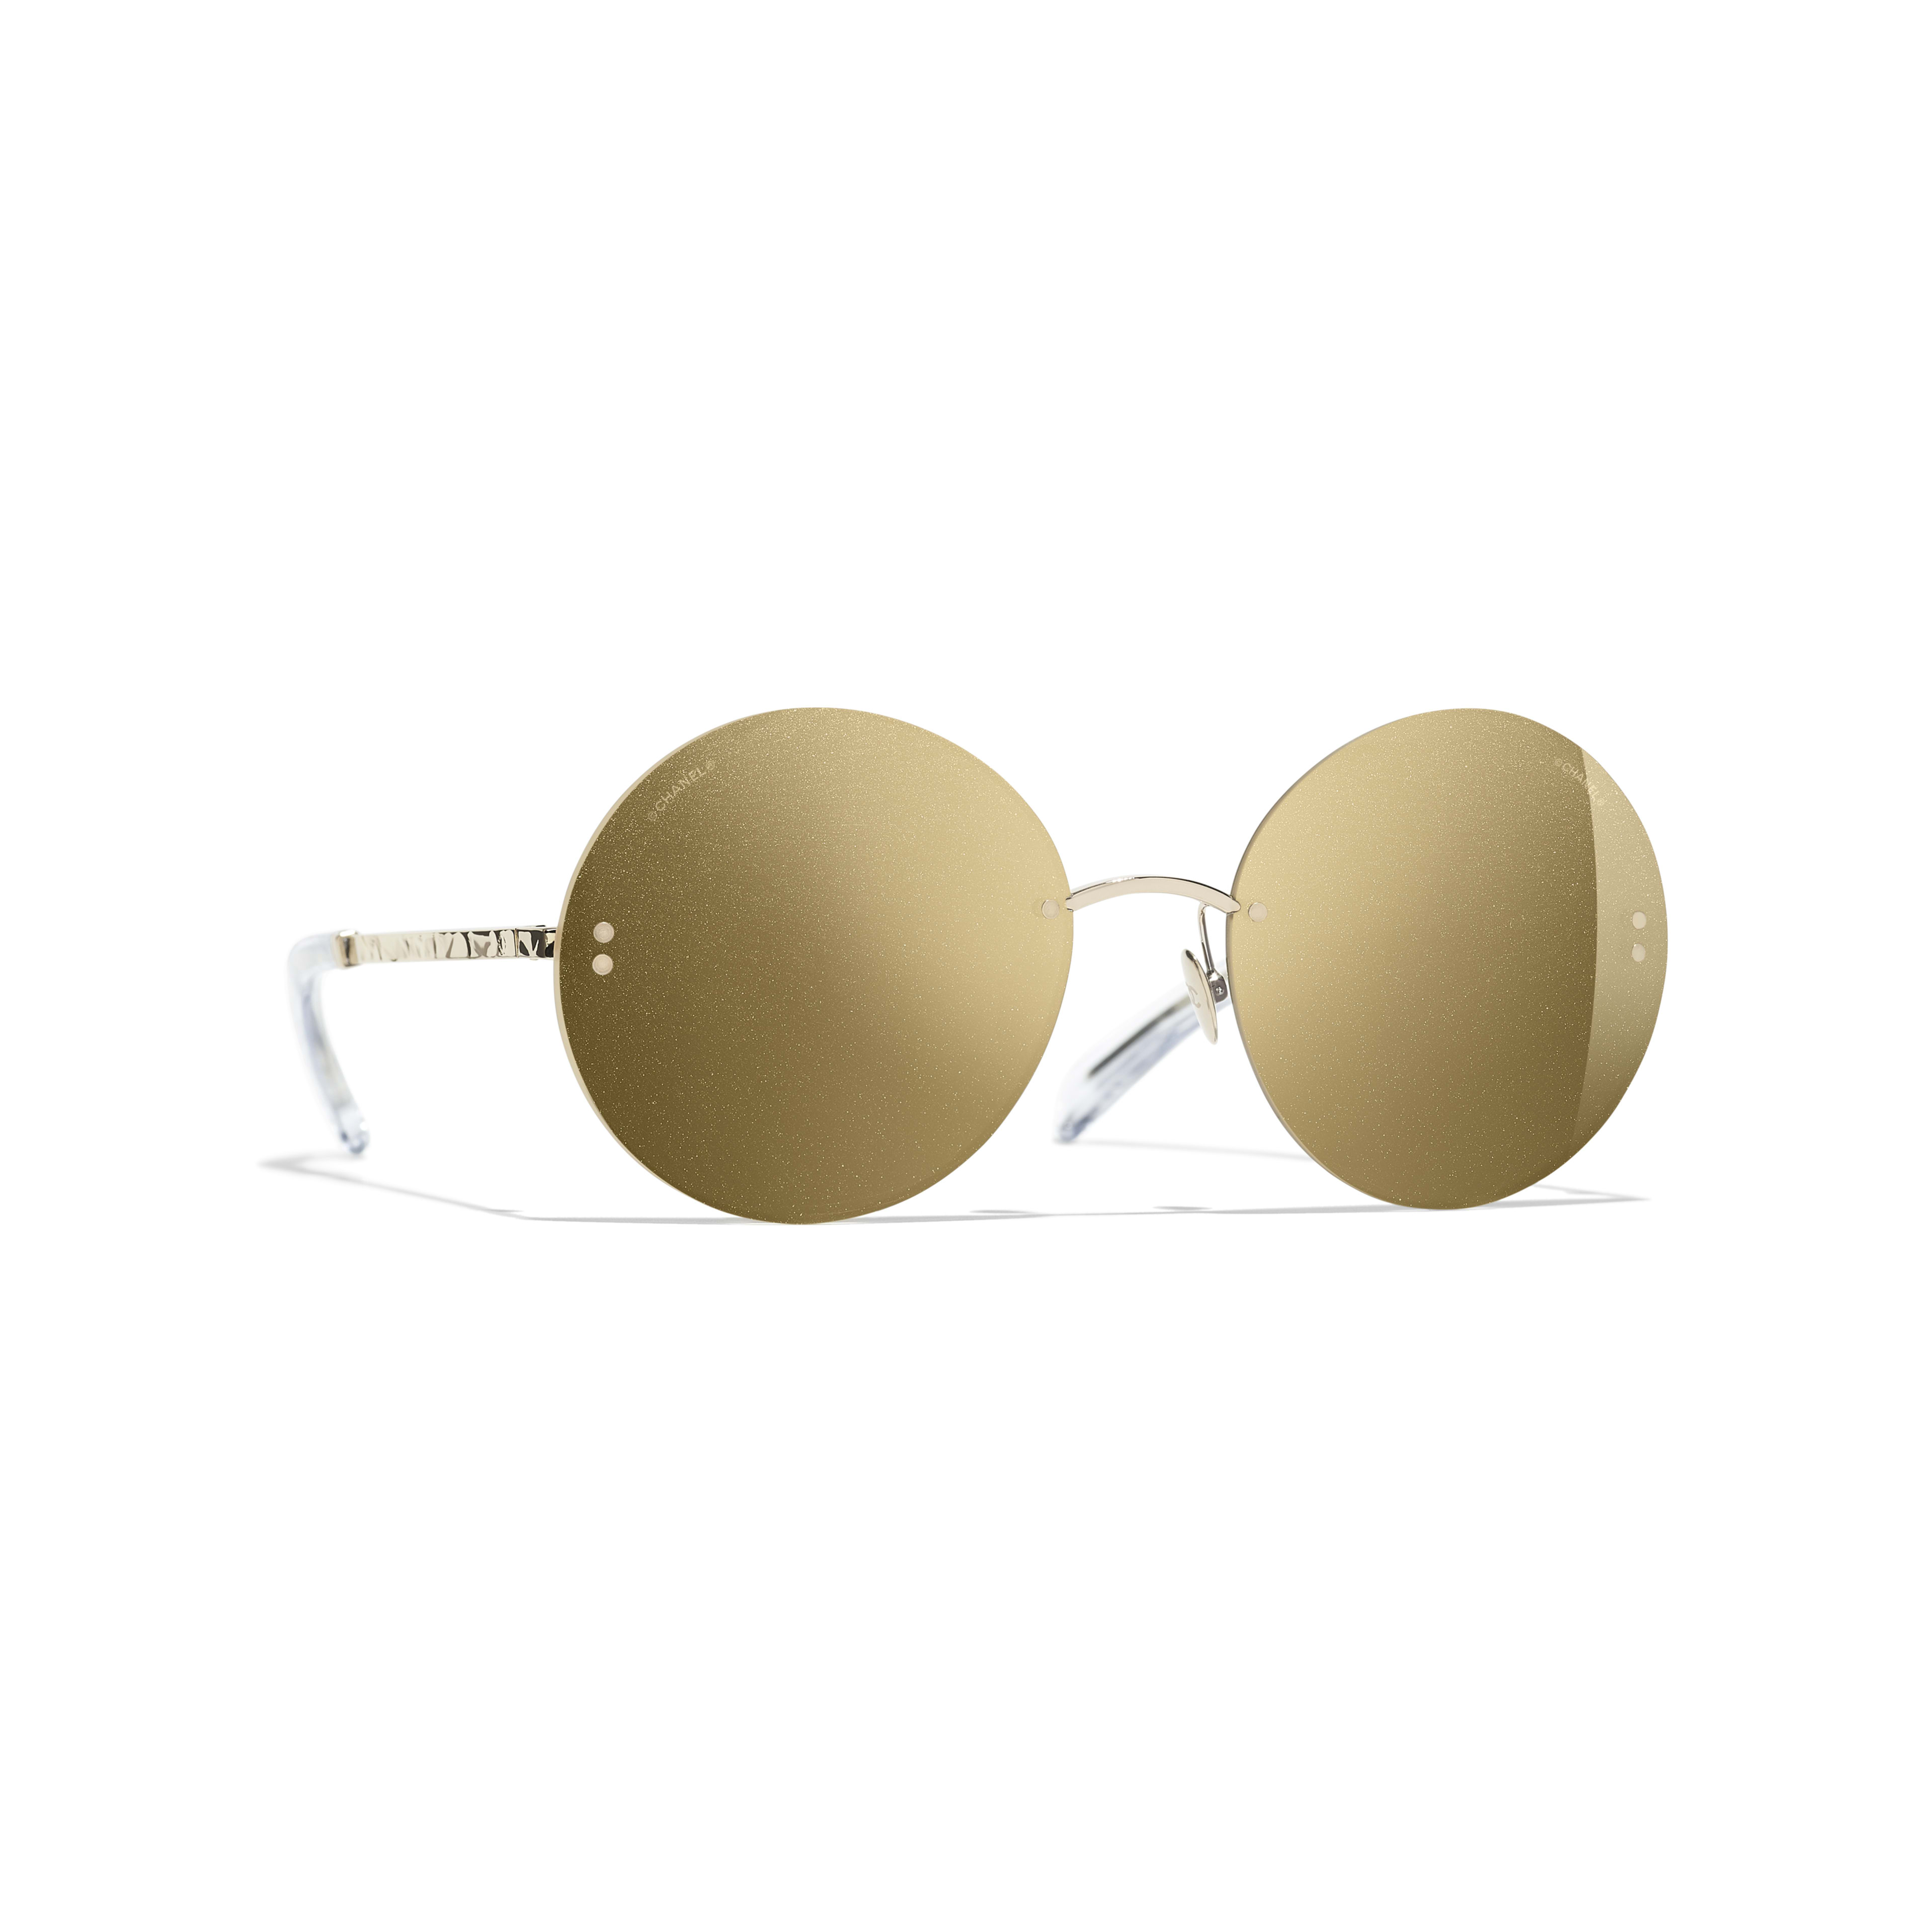 Round Sunglasses - Gold - Metal - Default view - see full sized version